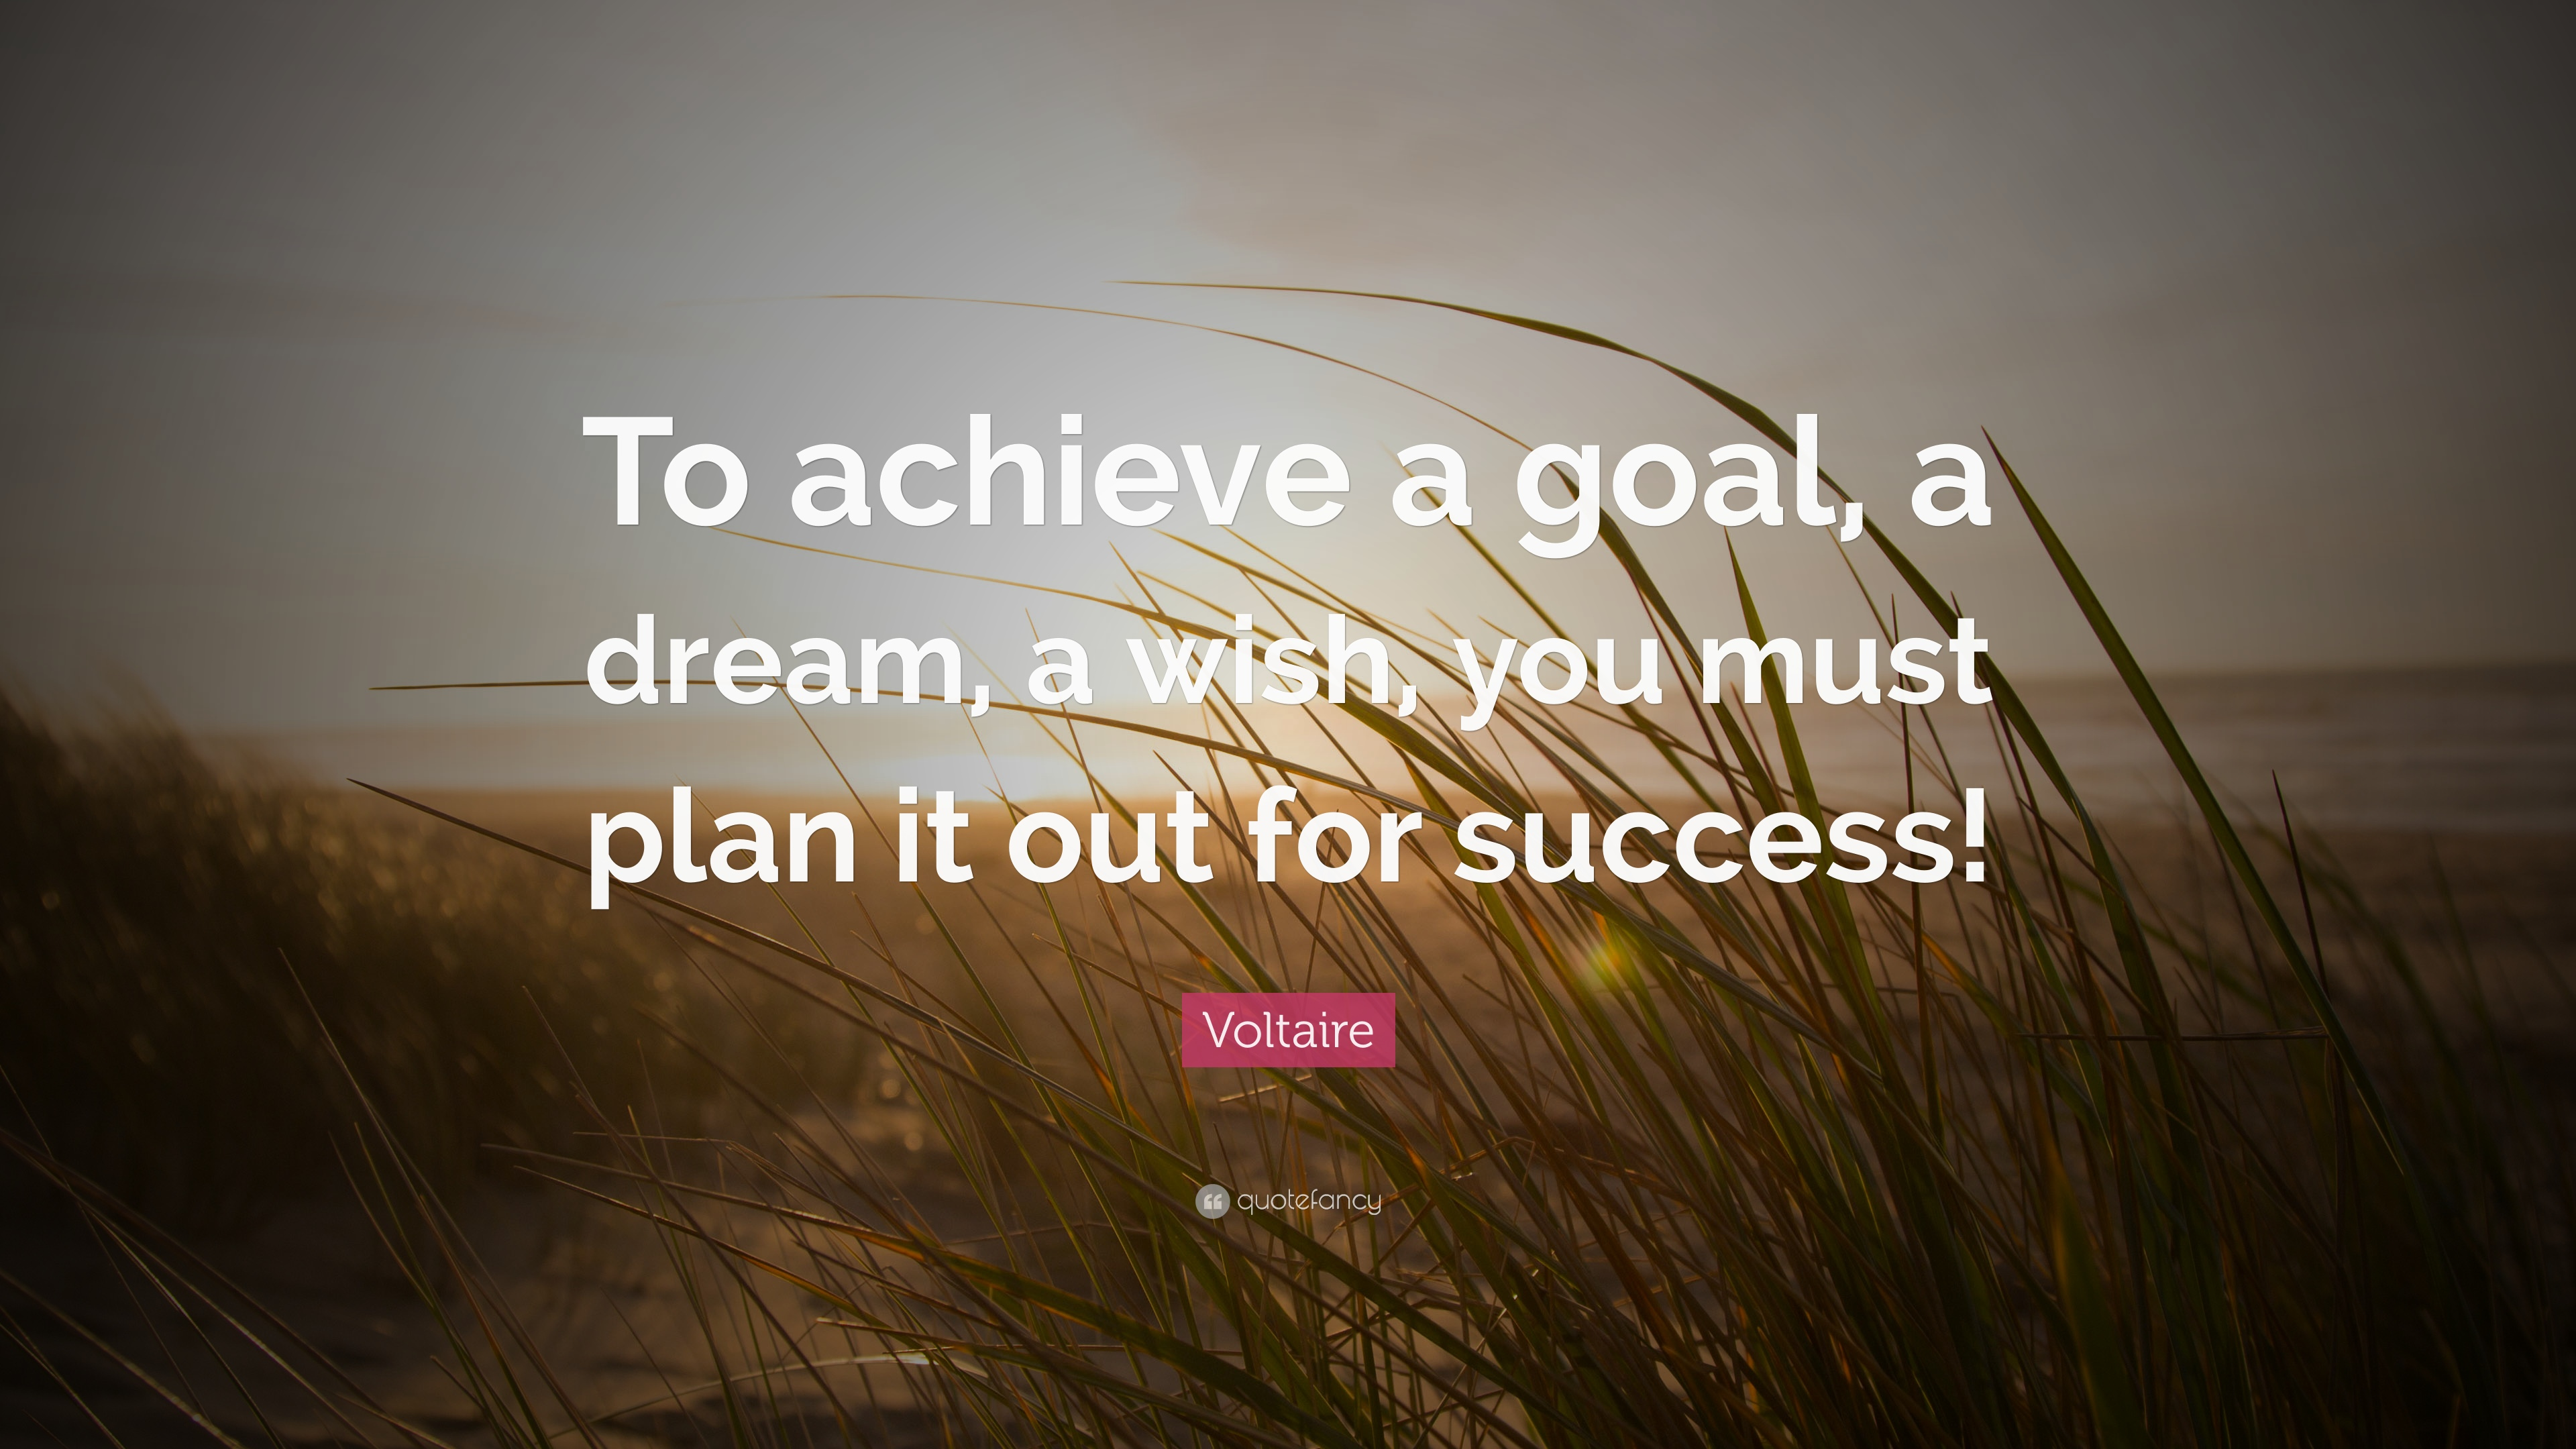 Captivating Voltaire Quote: U201cTo Achieve A Goal, A Dream, A Wish, You